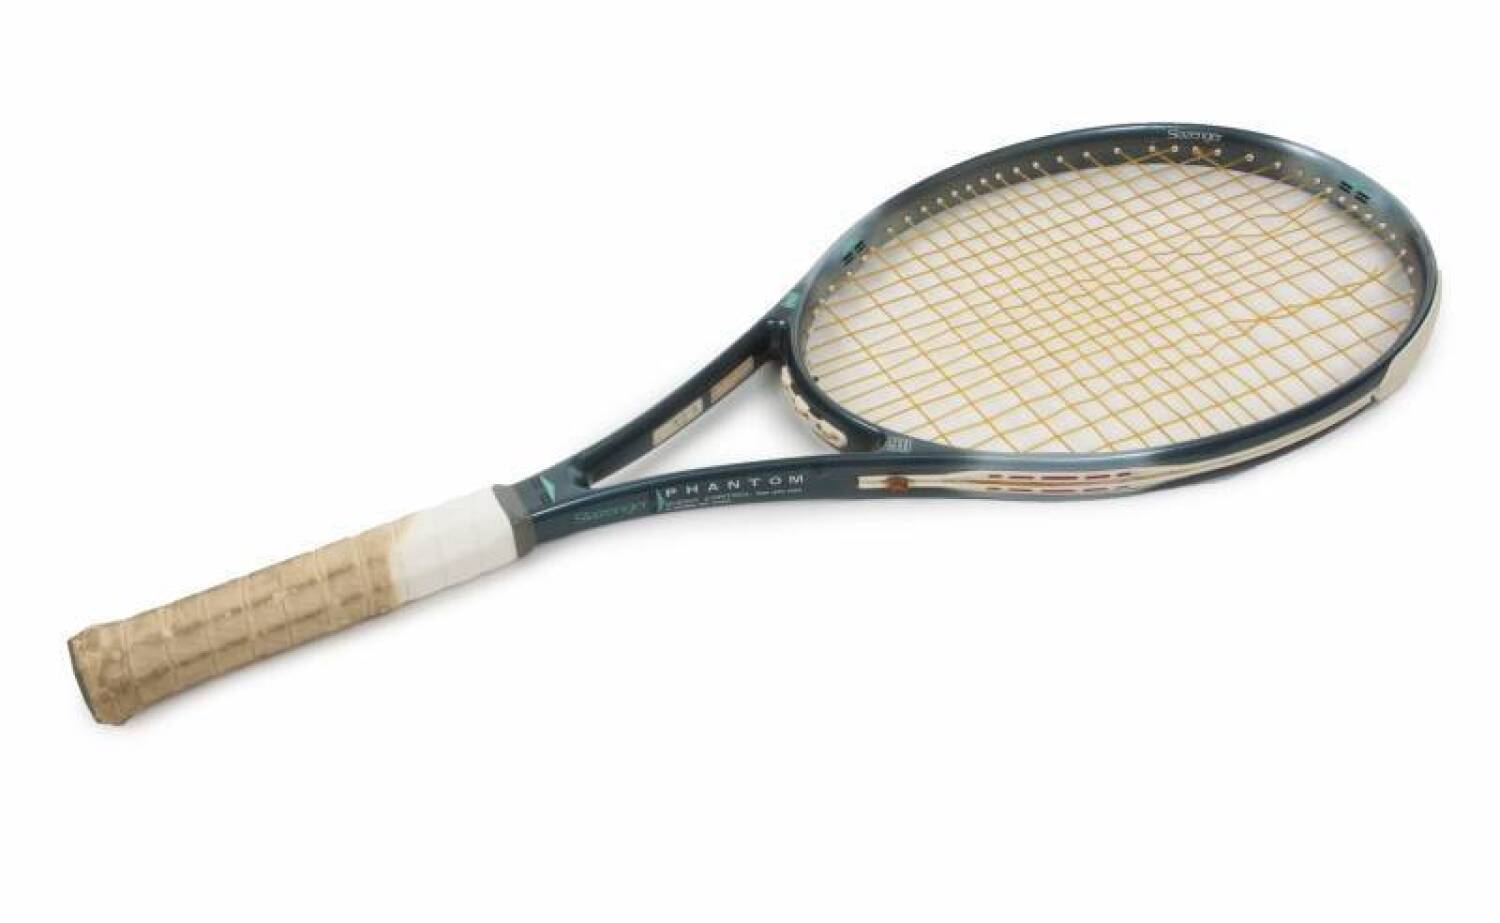 JOHN McENROE OWNED AND USED TENNIS RACQUET GIFTED FROM JIMMY CONNORS ... 671c6a9ae